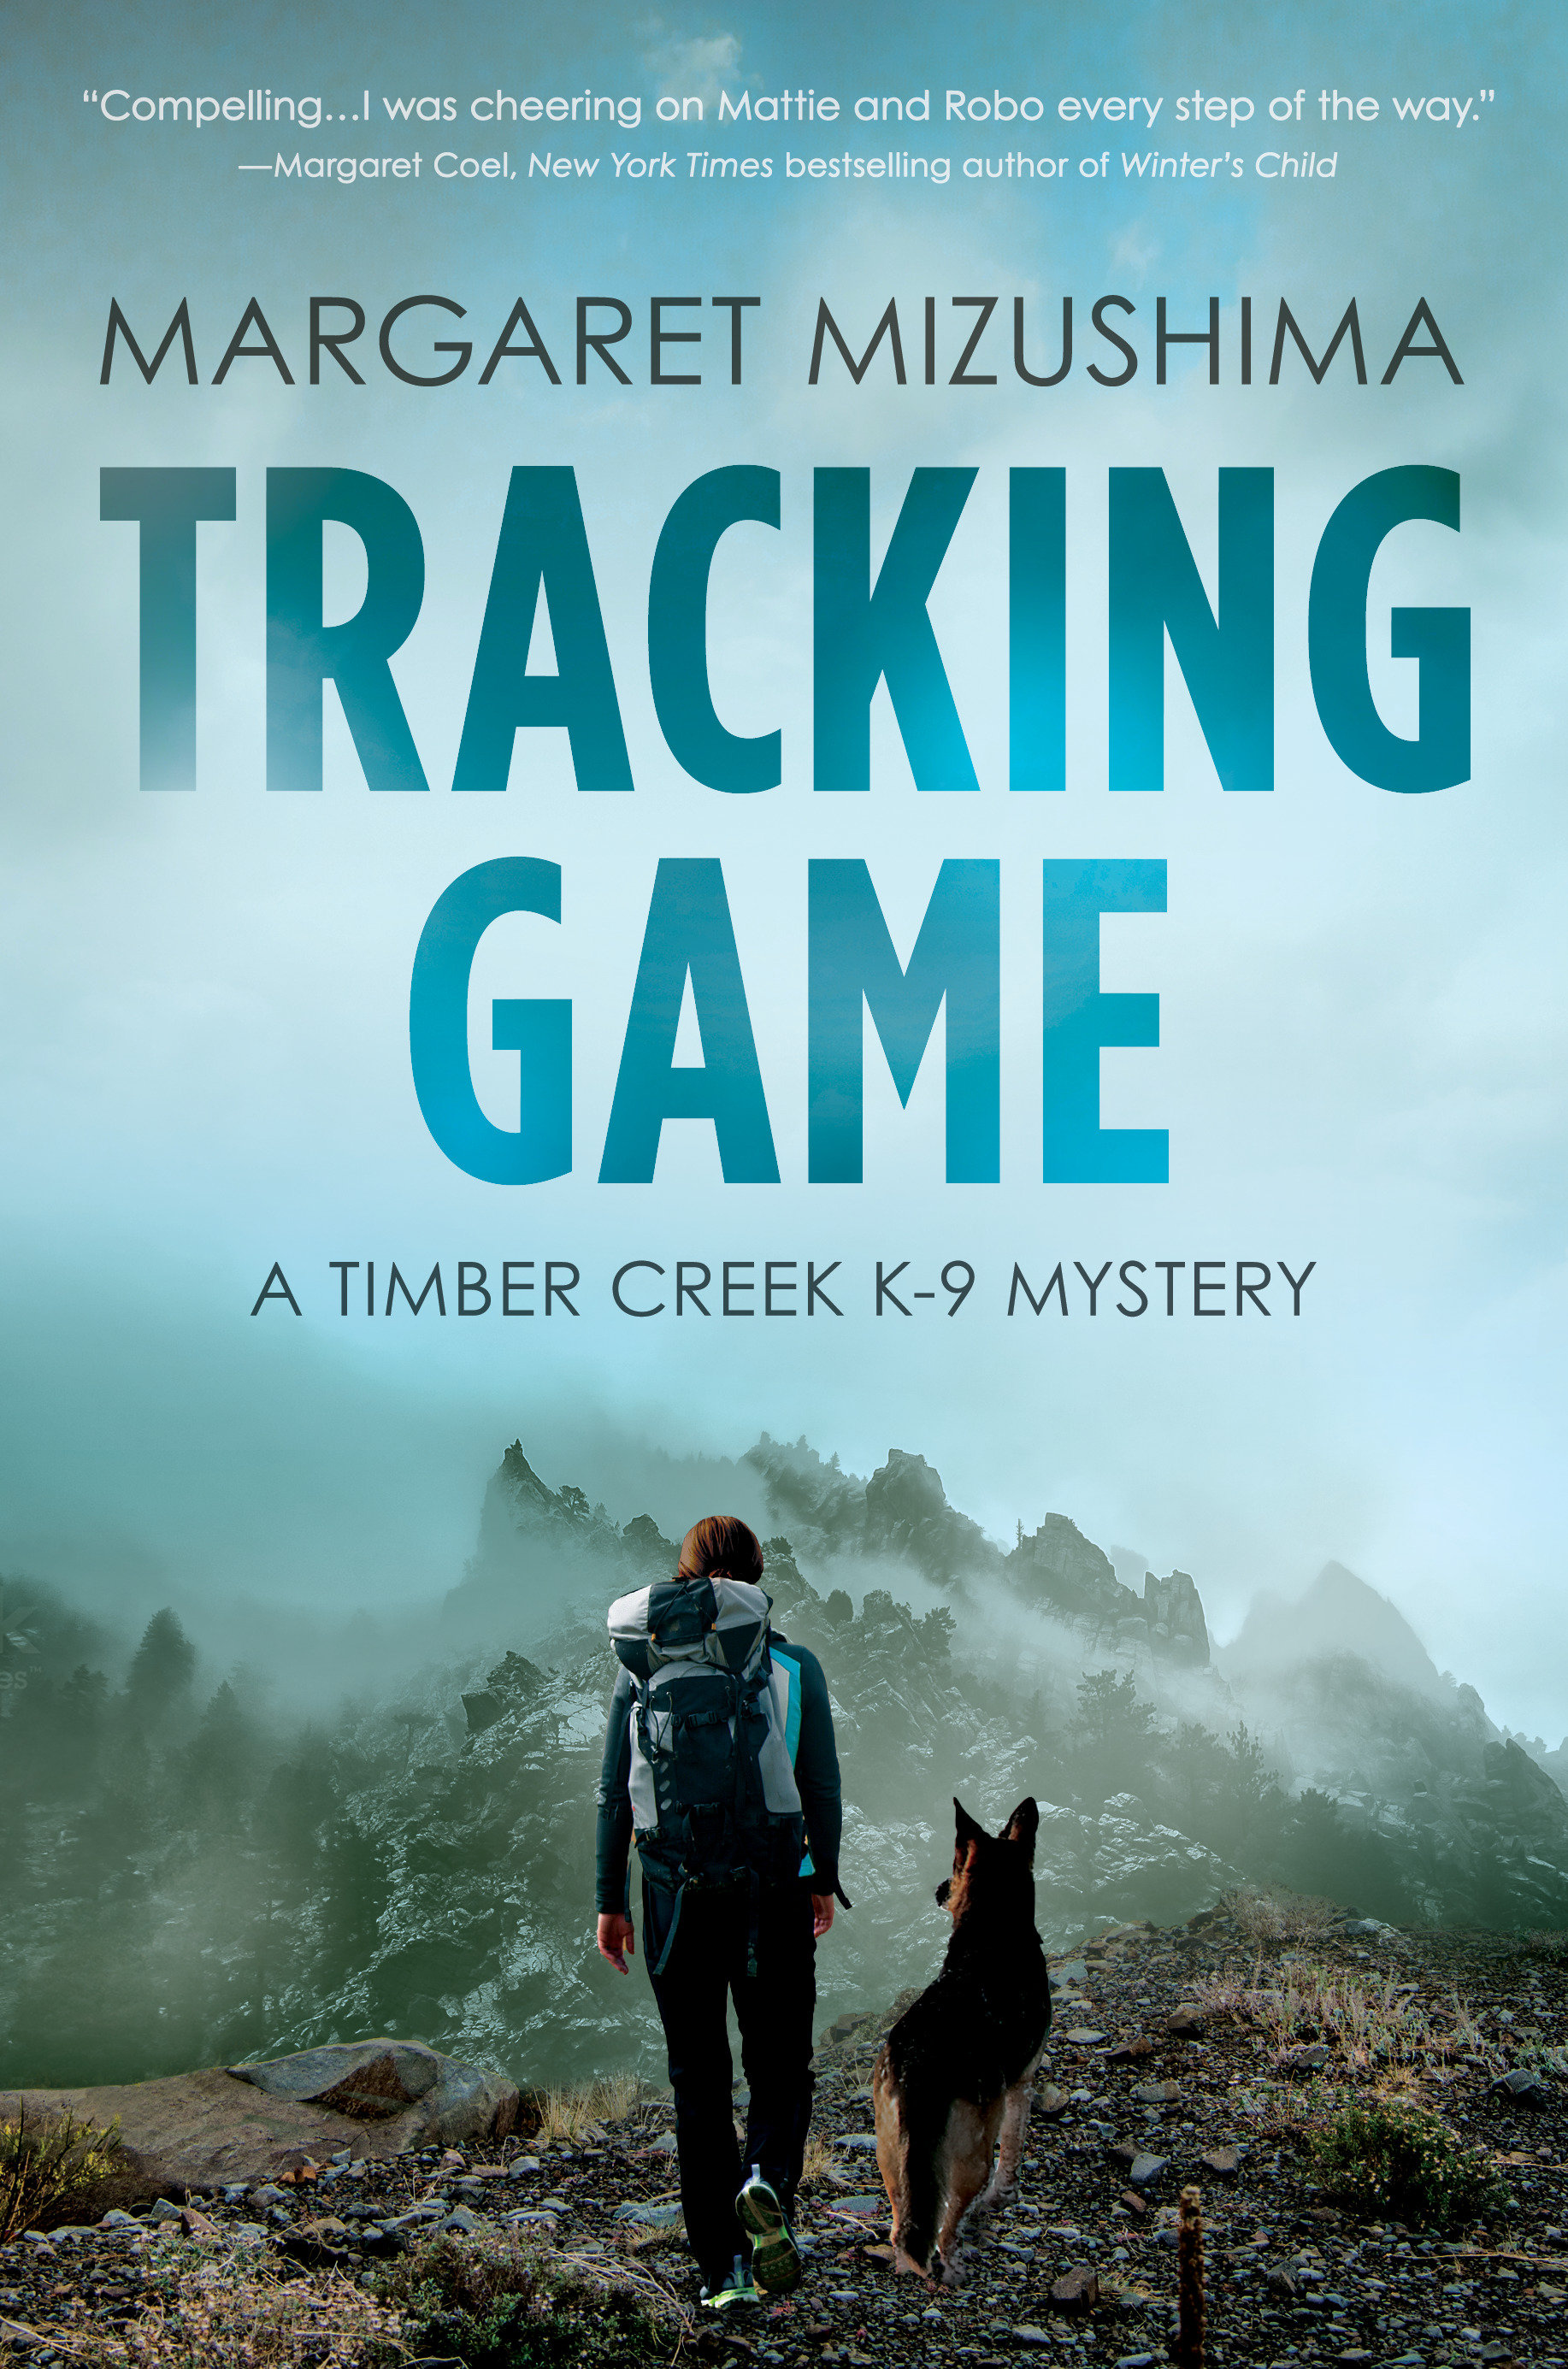 Tracking Game A Timber Creek K-9 Mystery